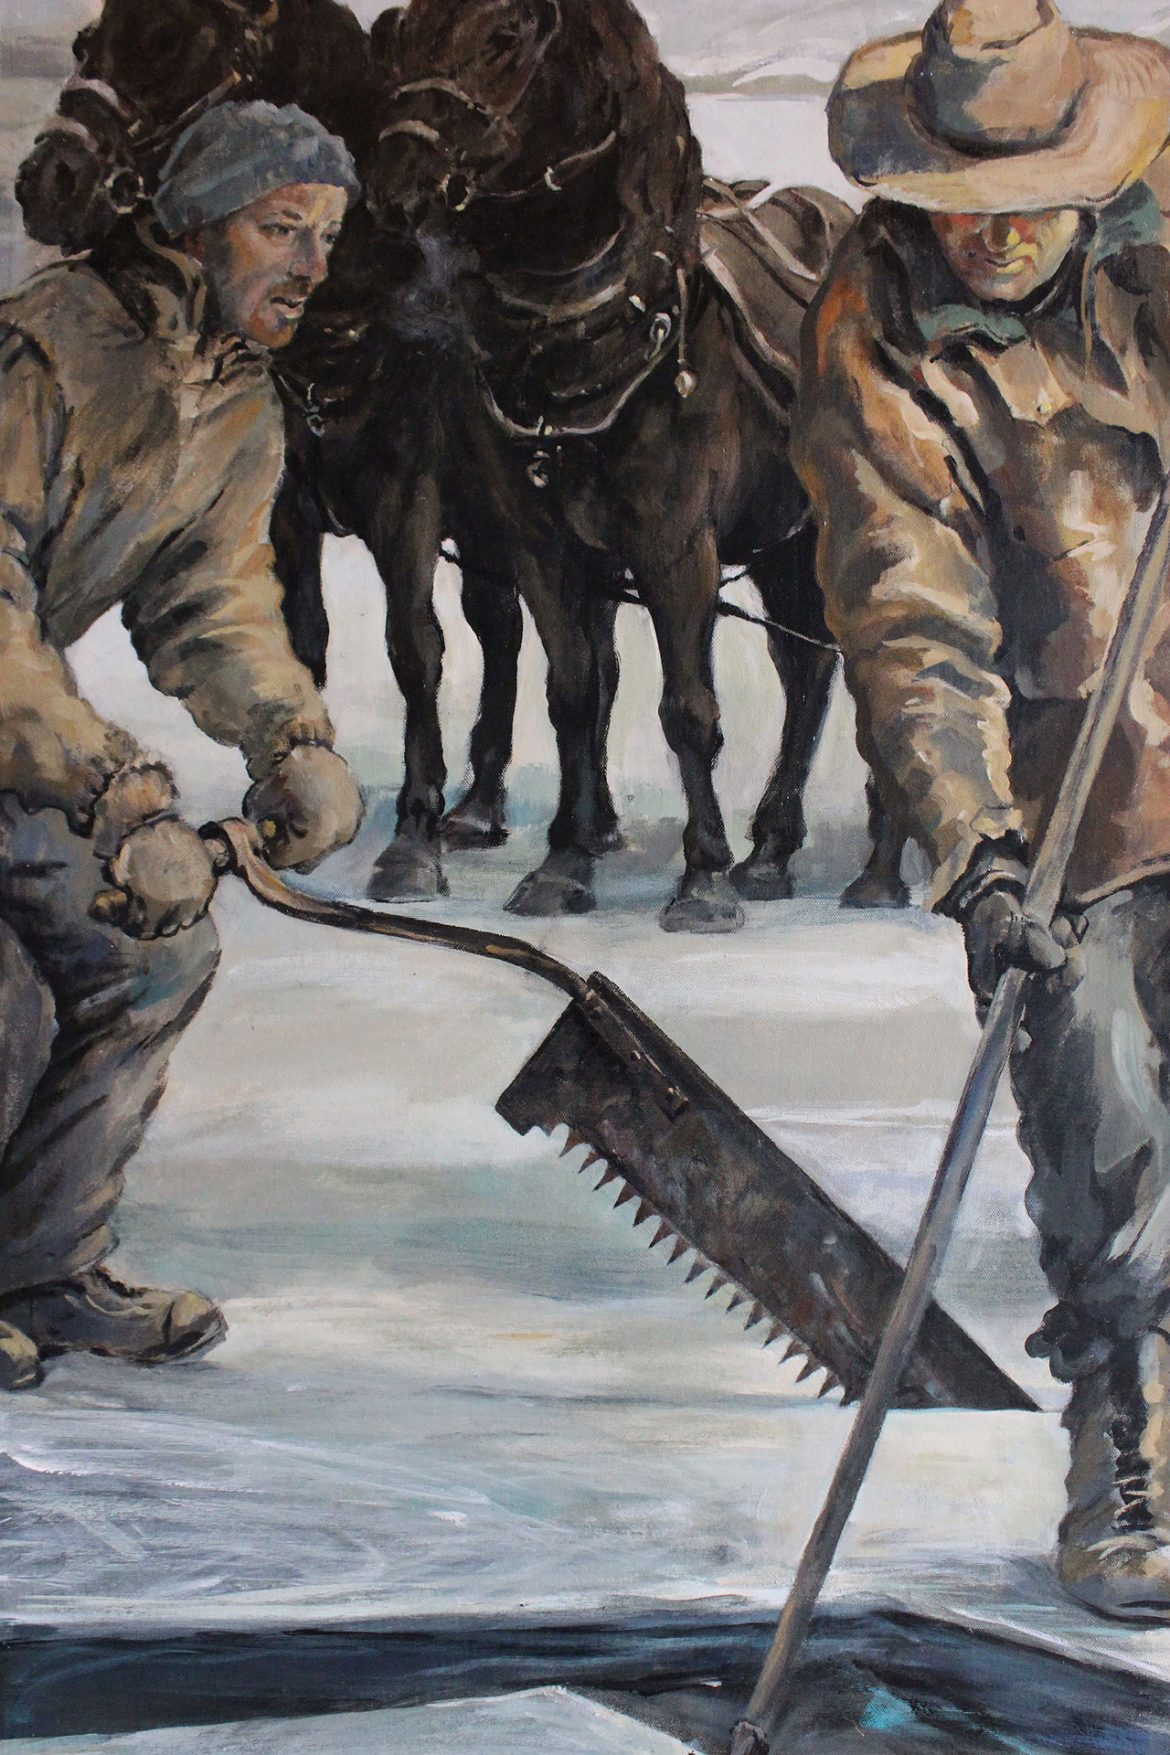 Kennebec mural, ice cutters